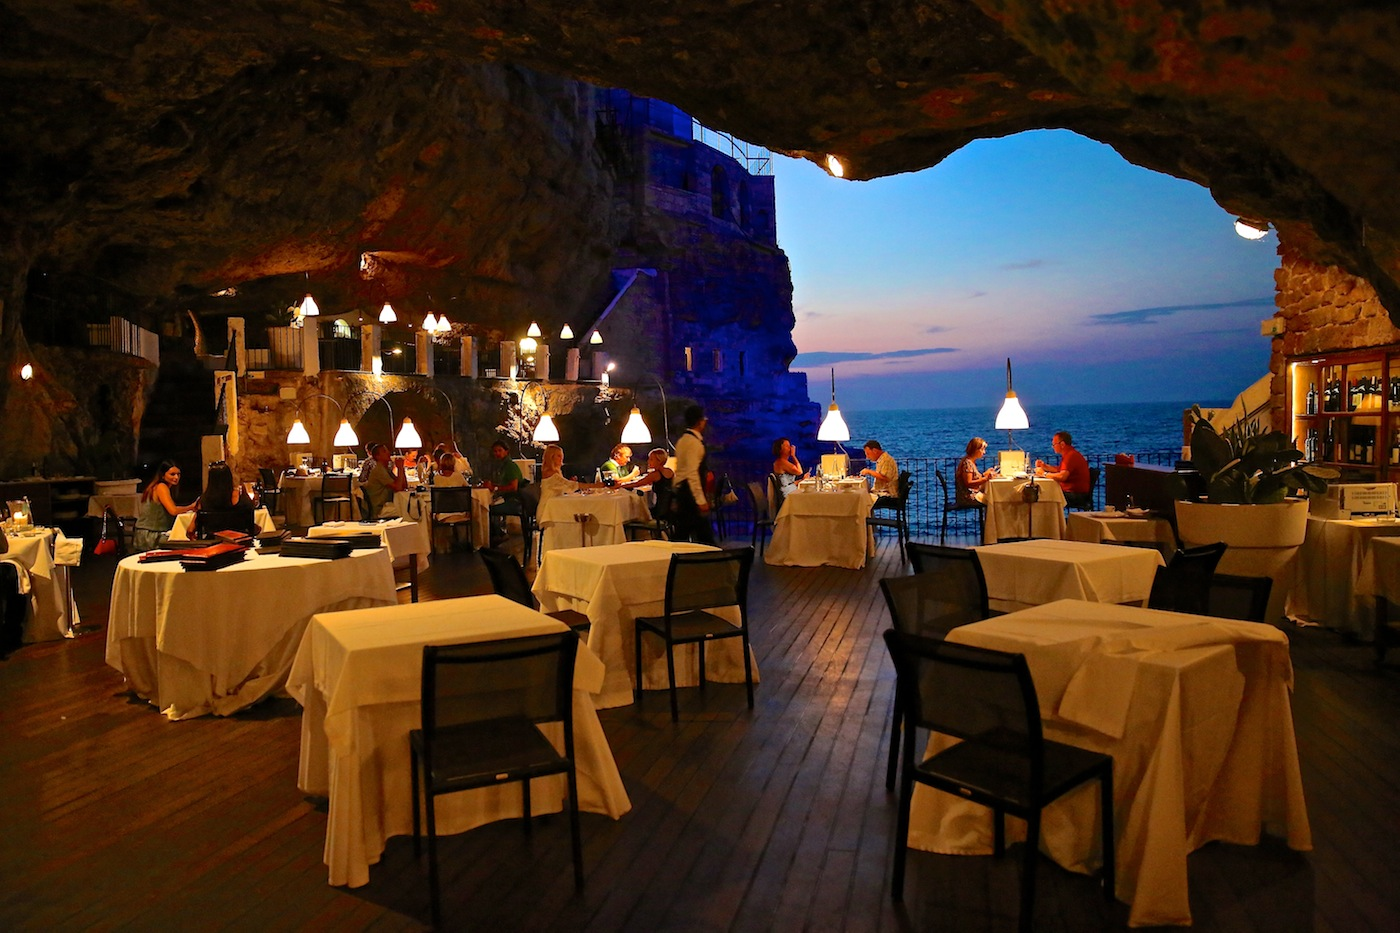 puglia cave restaurant a pinterest sensation explored wildluxe. Black Bedroom Furniture Sets. Home Design Ideas